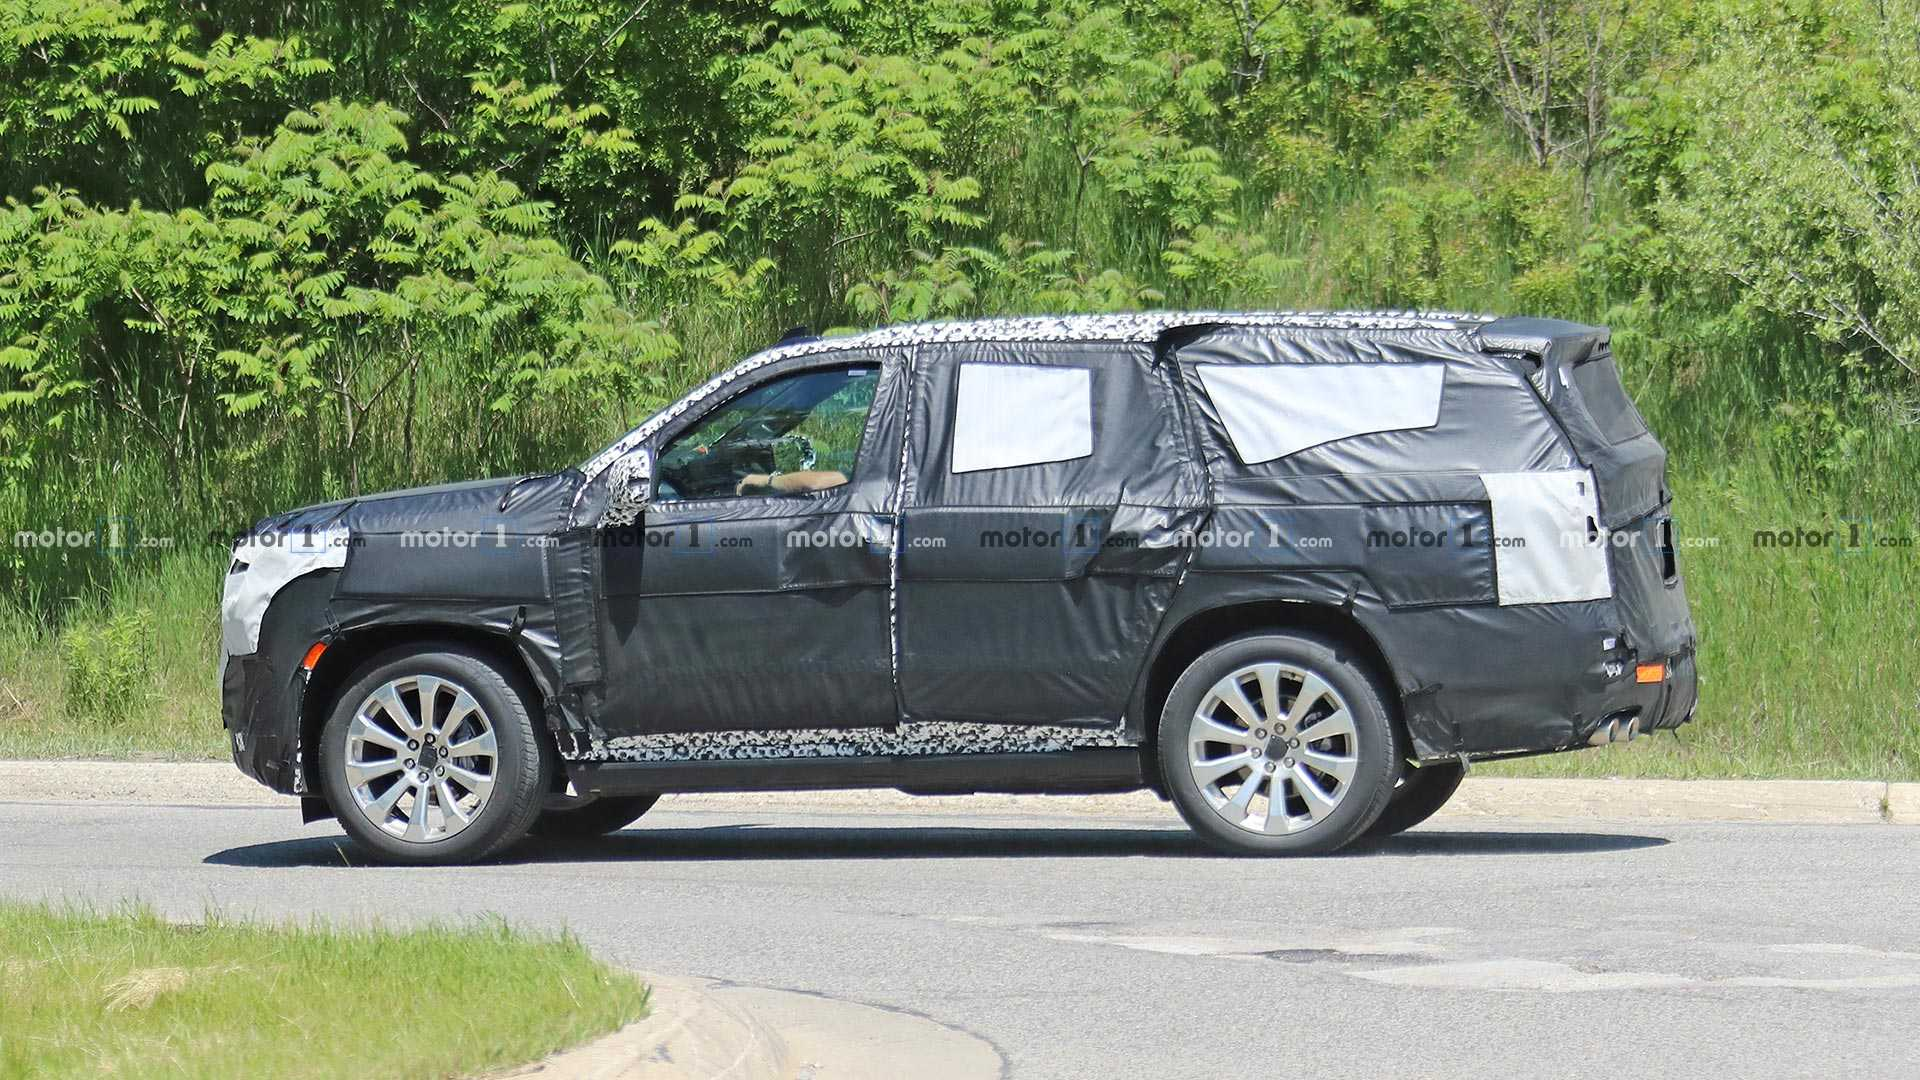 2019 - [Chevrolet/GMC] Tahoe / Suburban / Yukon Chevrolet-tahoe-high-country-spy-shots